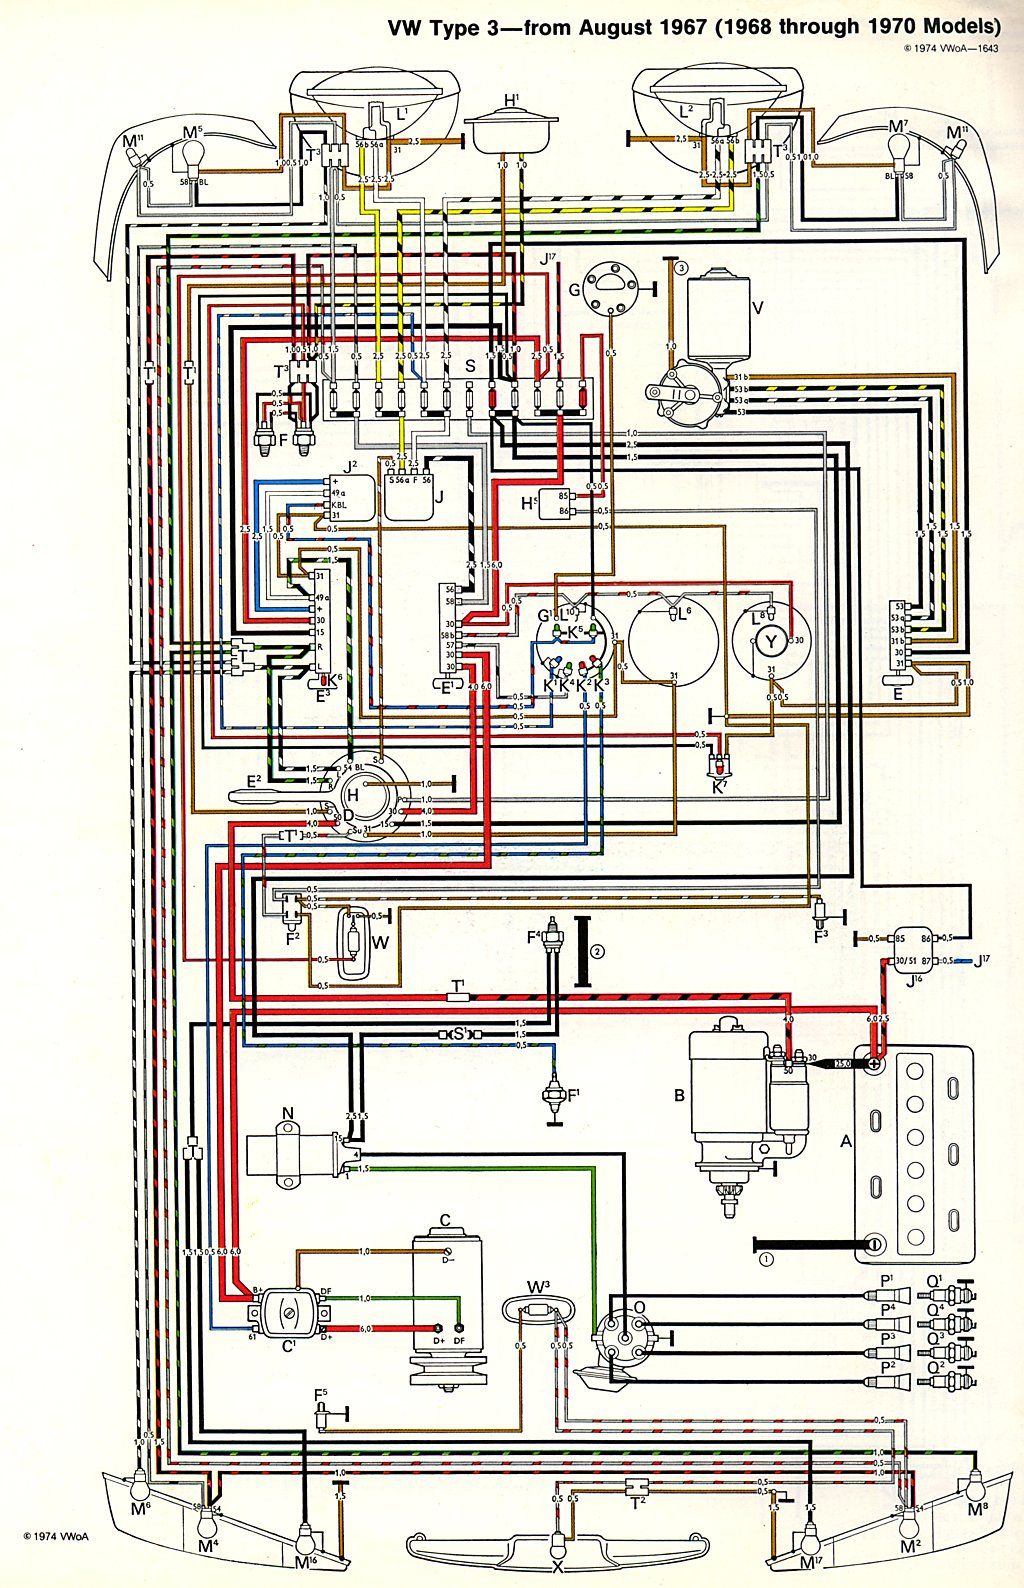 Fuscahistoriaartigos Tecnicosfotos E also 1970 Volkswagen Beetle Wiring Diagram further Viewtopic likewise Wiringt1 as well Viewtopic. on 1974 super beetle wiring diagram